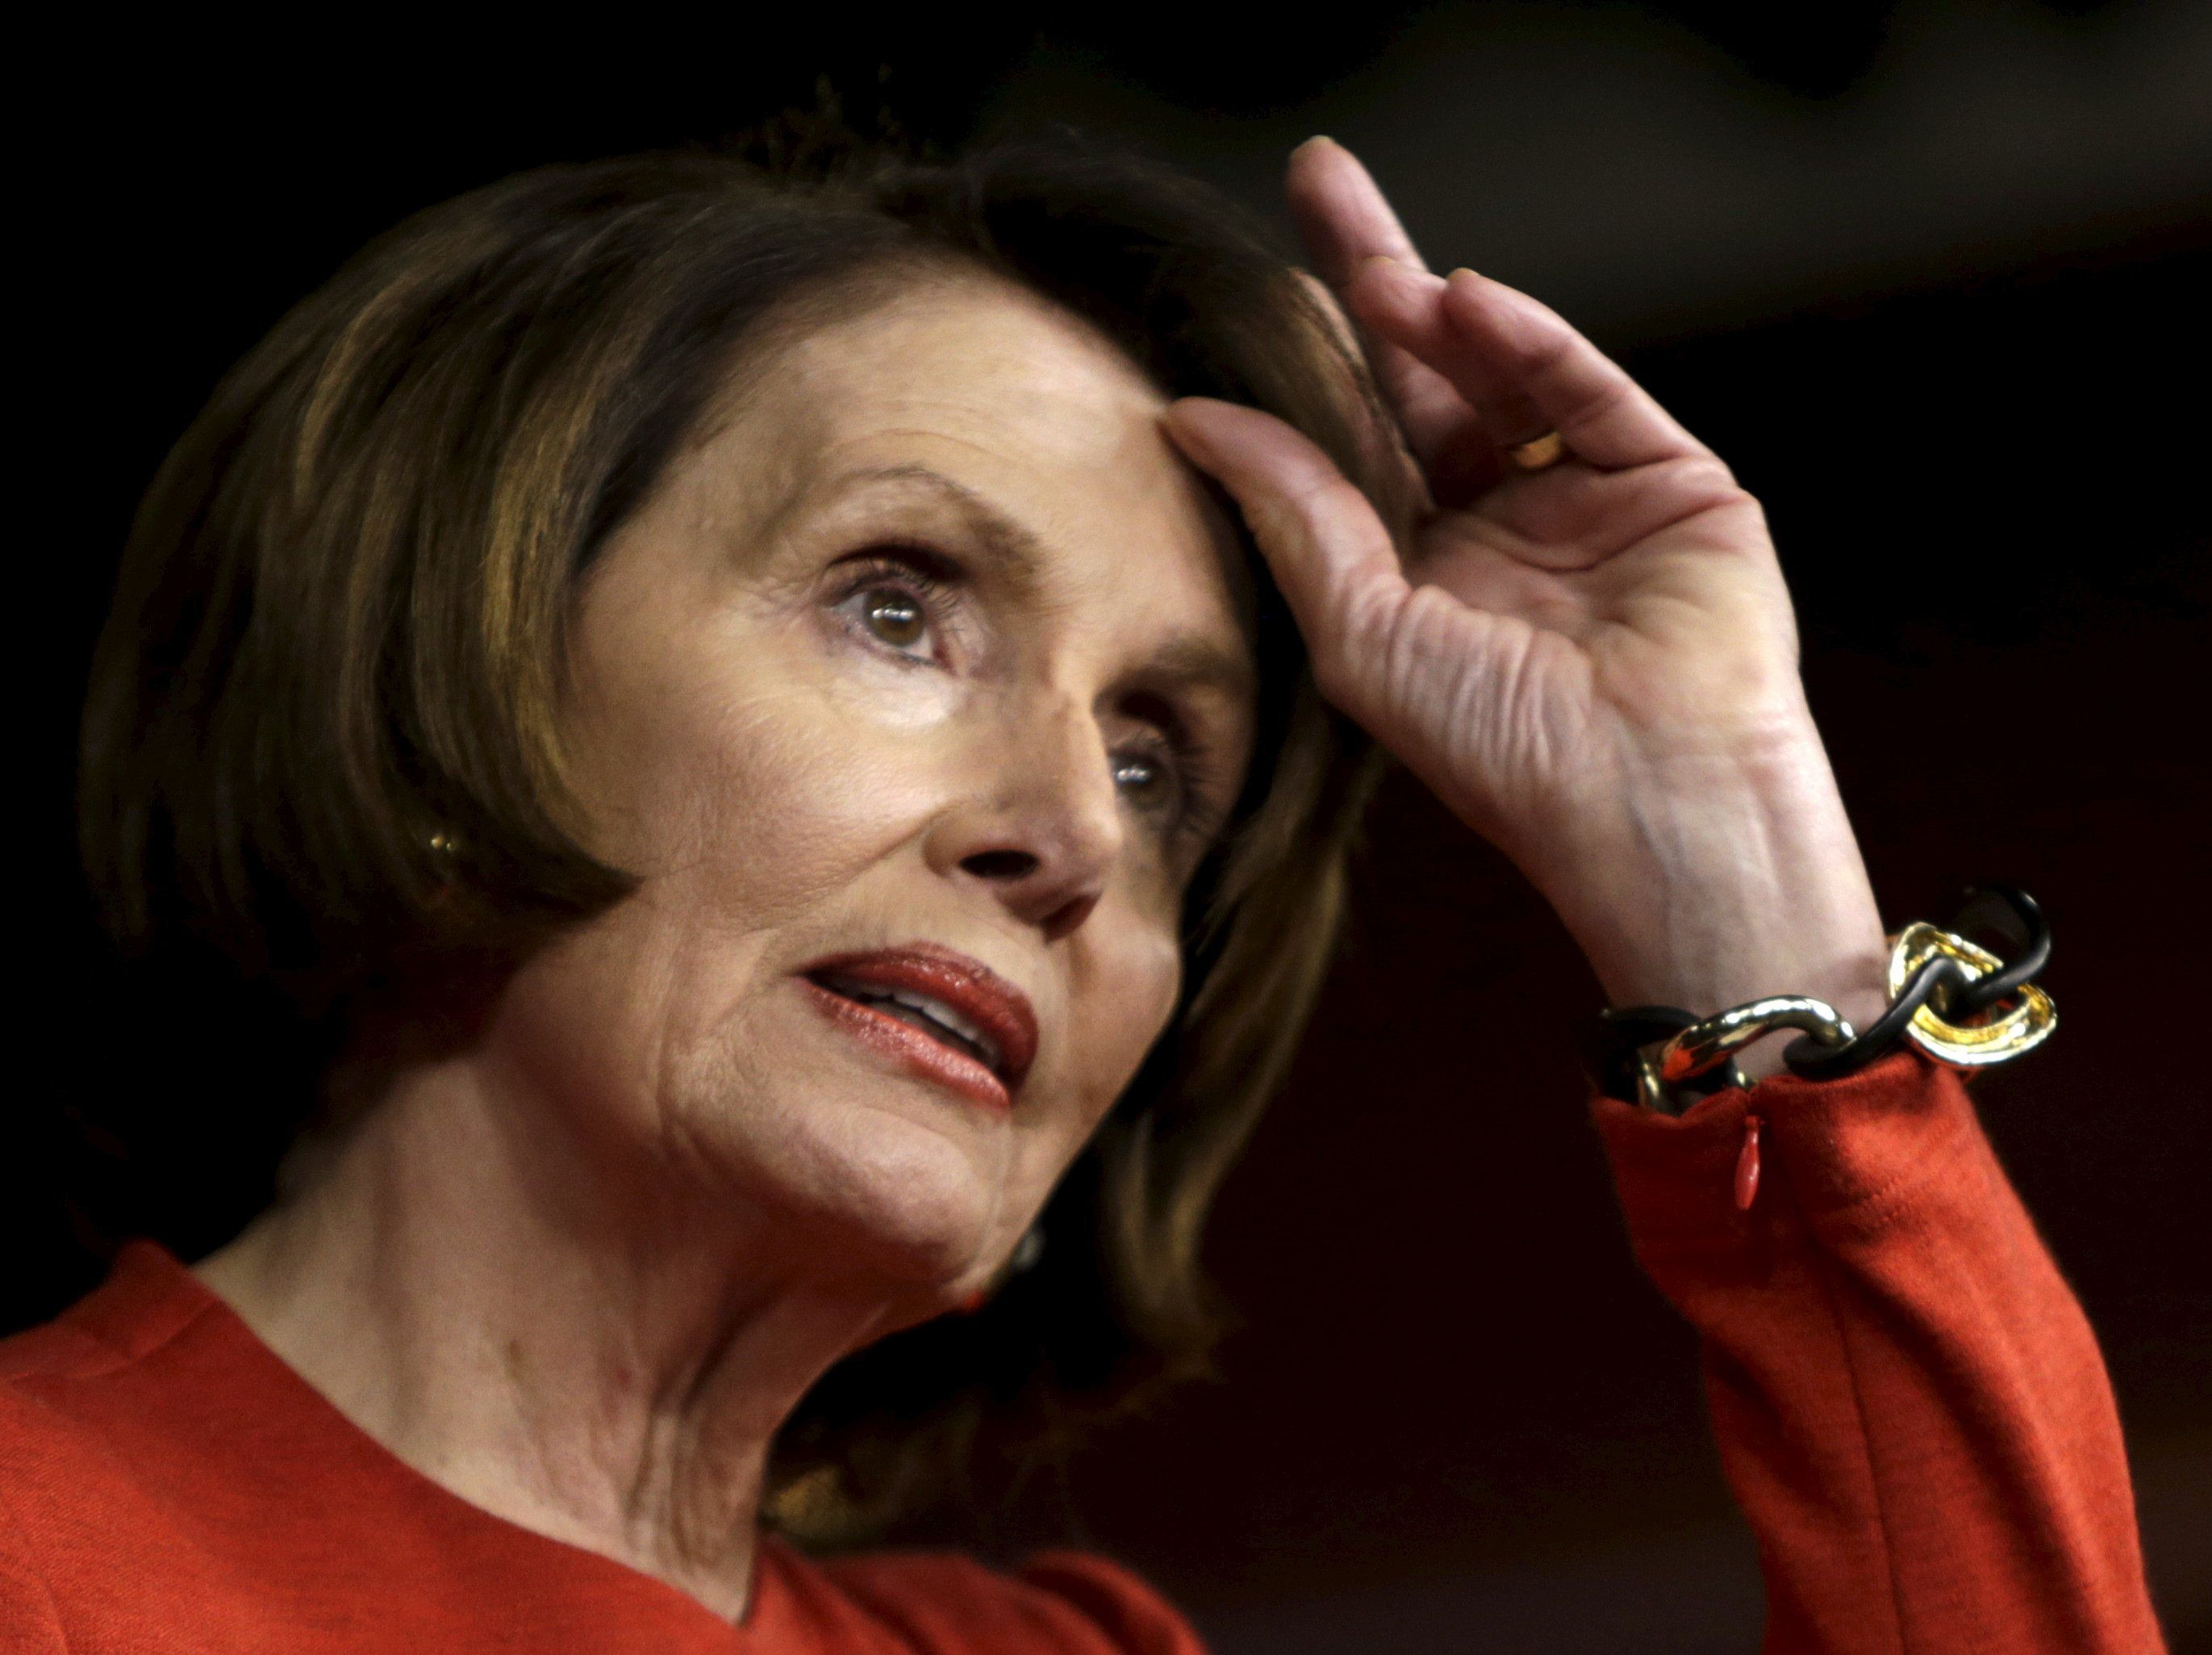 House Minority Leader Nancy Pelosi (D-Calif.) is grappling with a lobbying campaign aimed at keeping drug prices high.